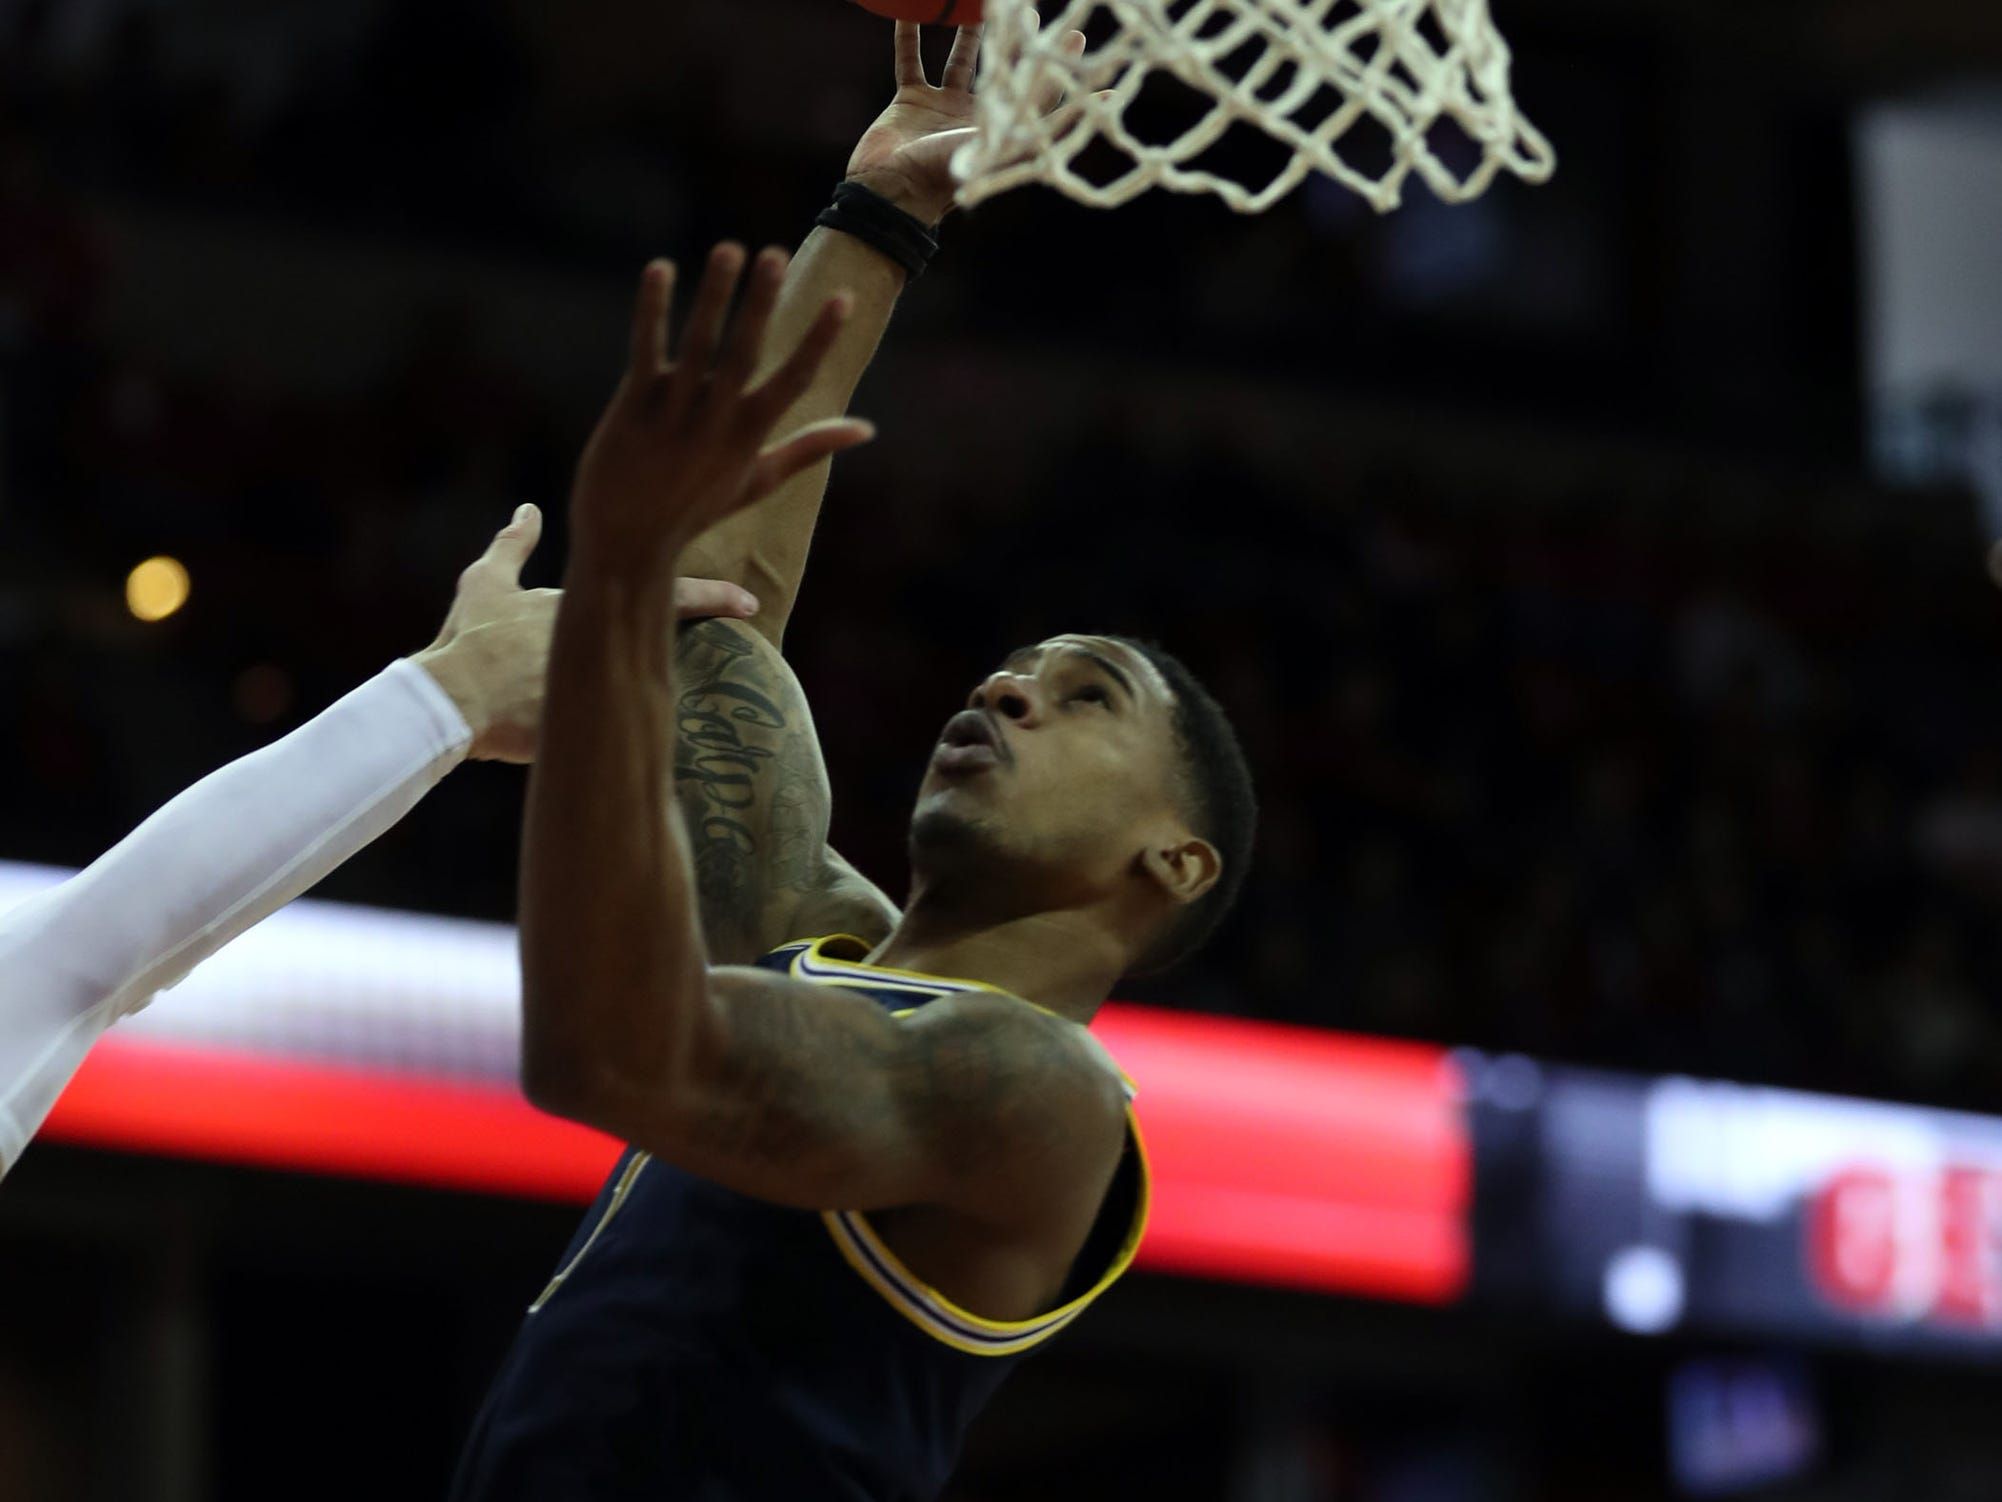 Michigan Wolverines guard Charles Matthews takes the ball to the basket against the Wisconsin Badgers at the Kohl Center, Jan. 19, 2019.